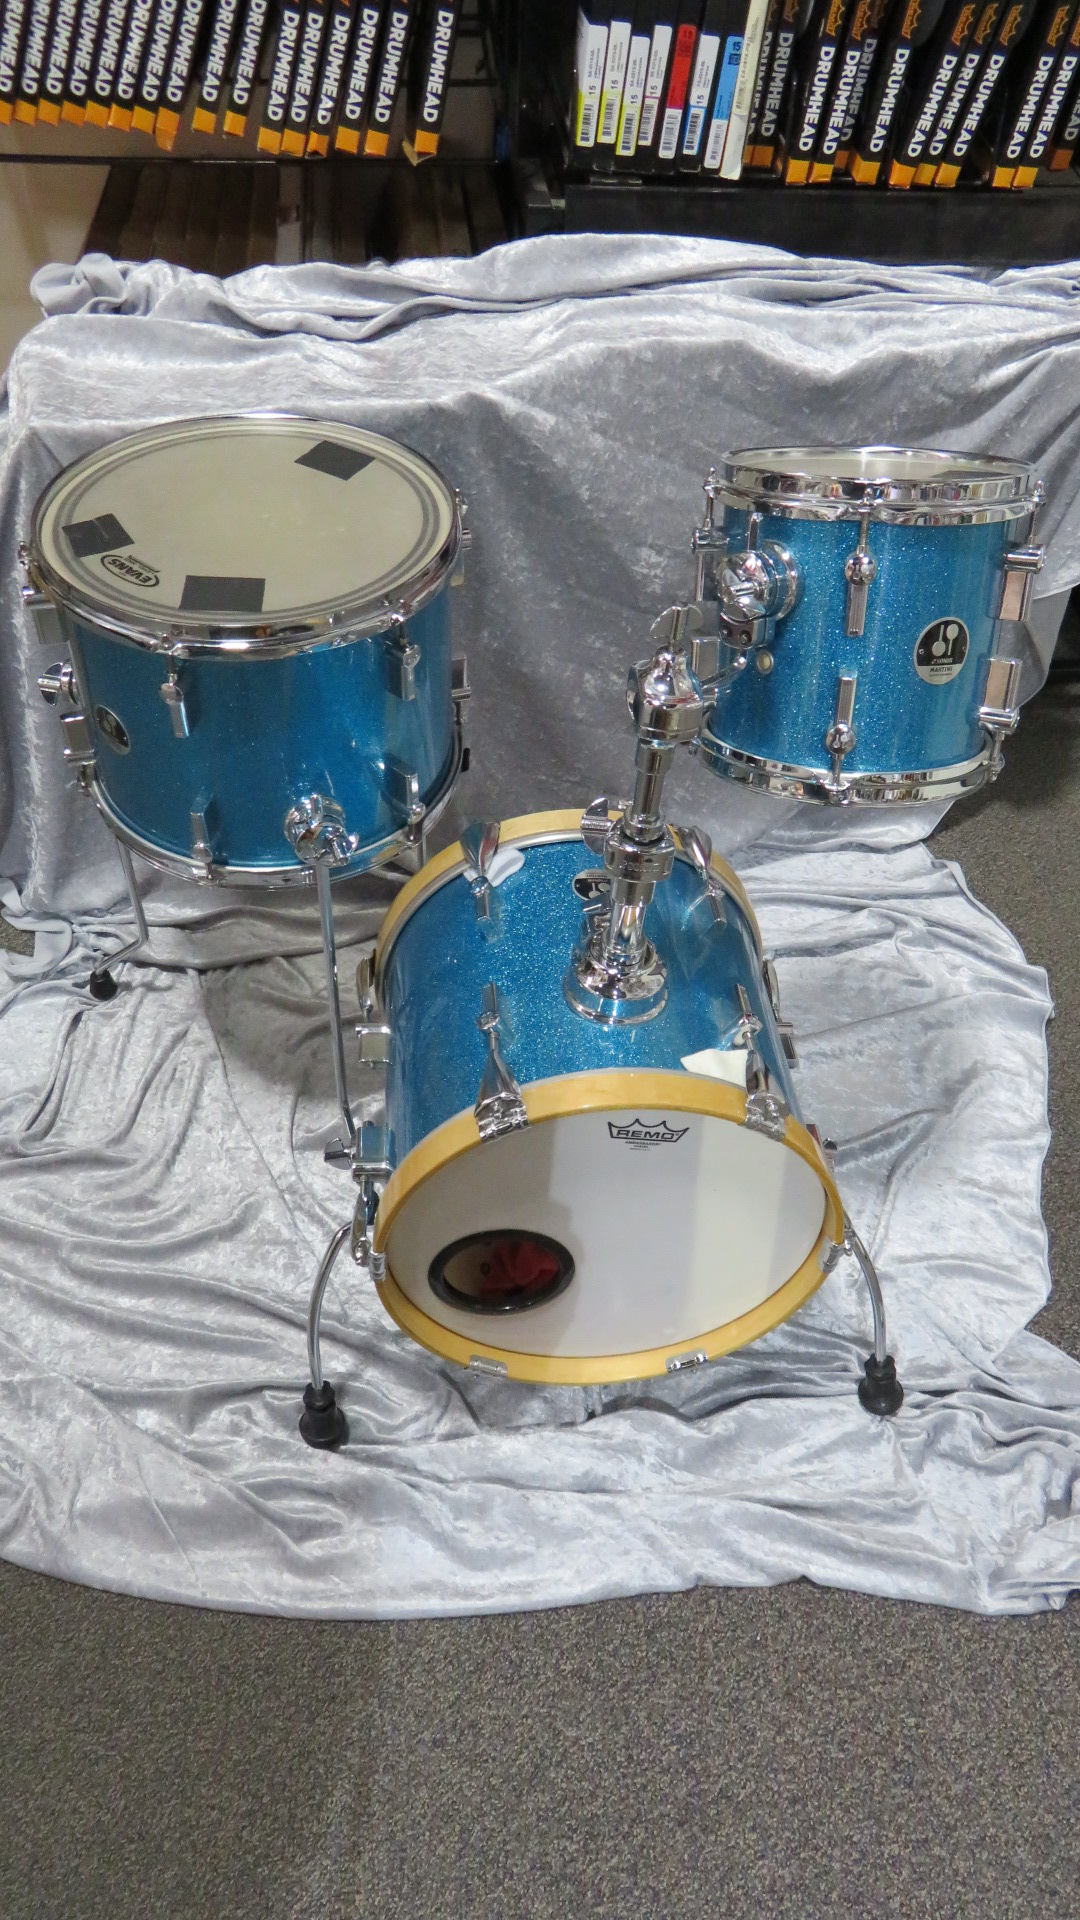 Sonor - Martini 3 Piece Shell set with bags